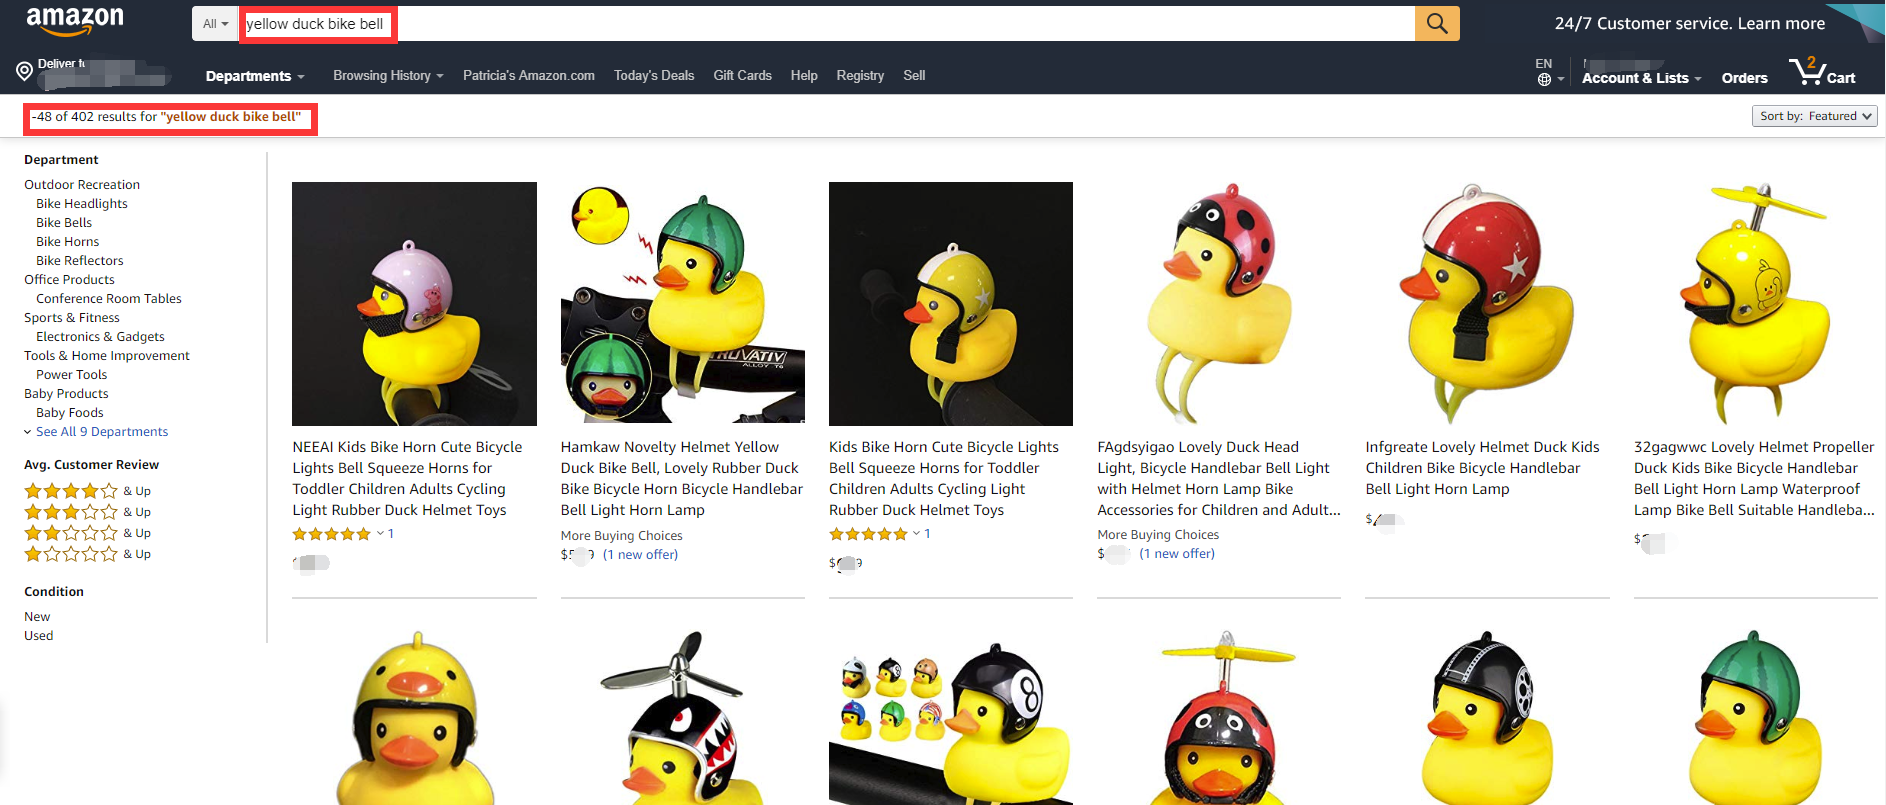 pato amarillo en amazon